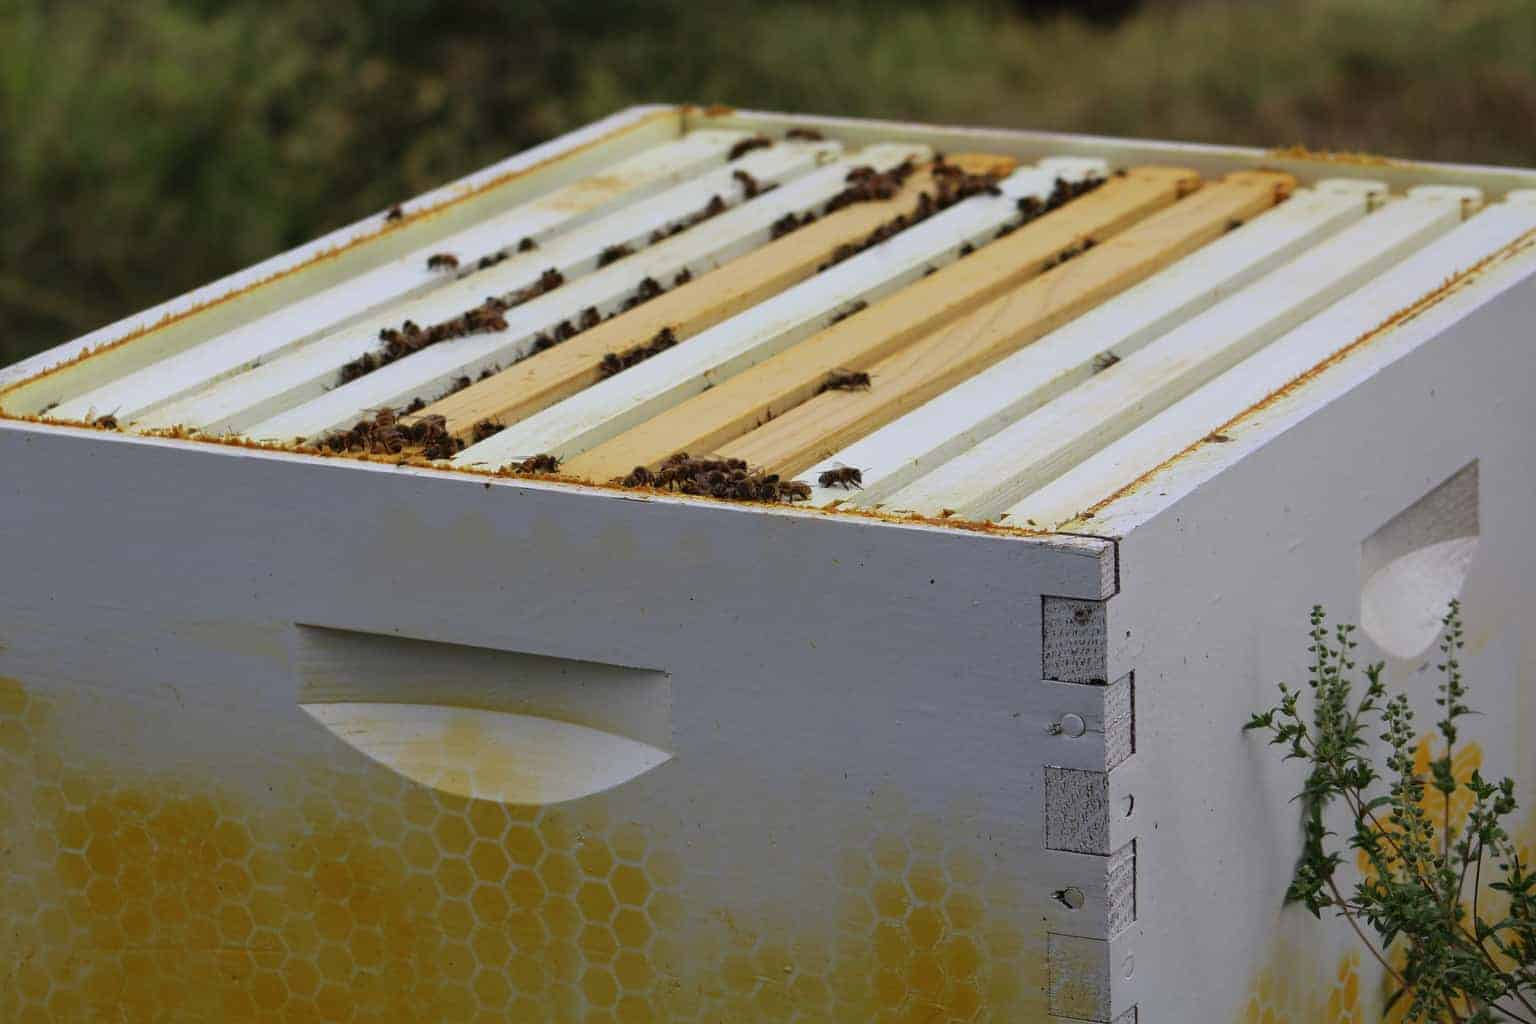 feeder utahbottomboard jones from bottom company parts feeders bee hive board screened